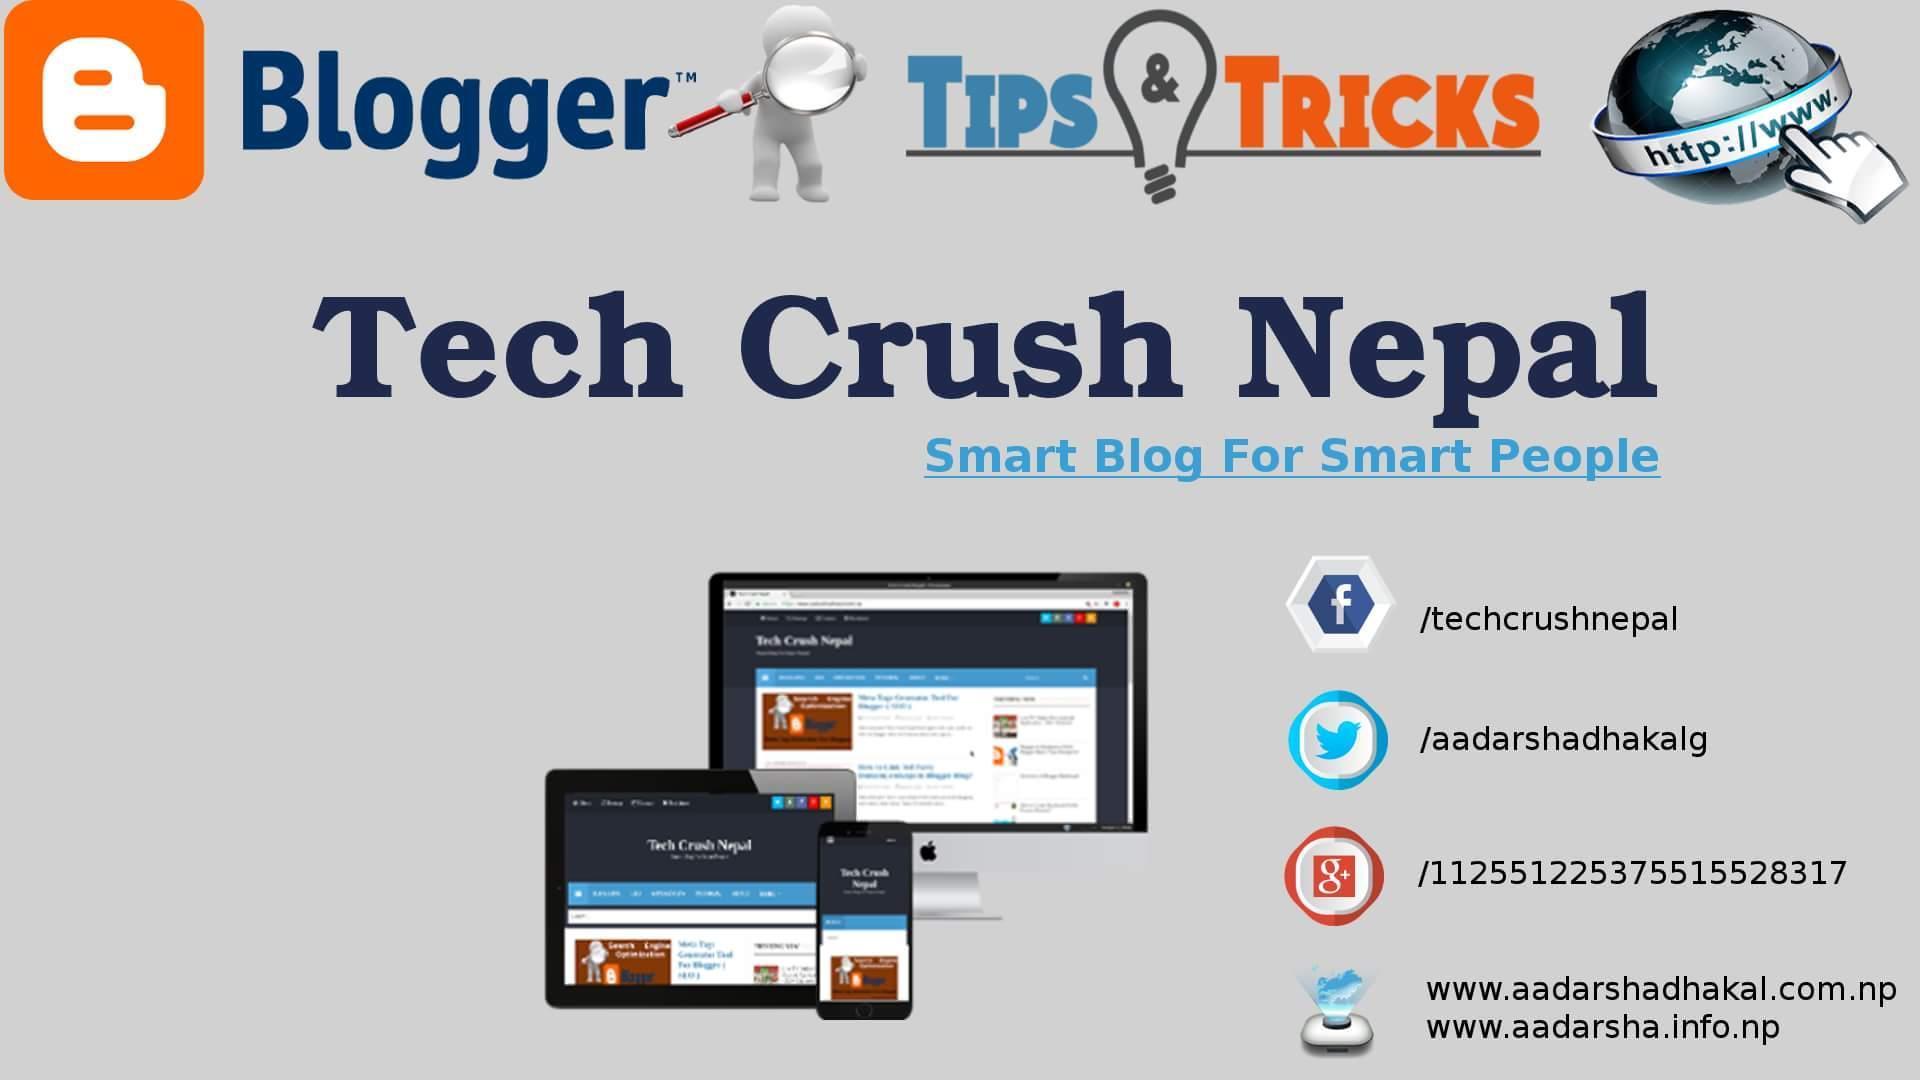 Tech Crush Nepal